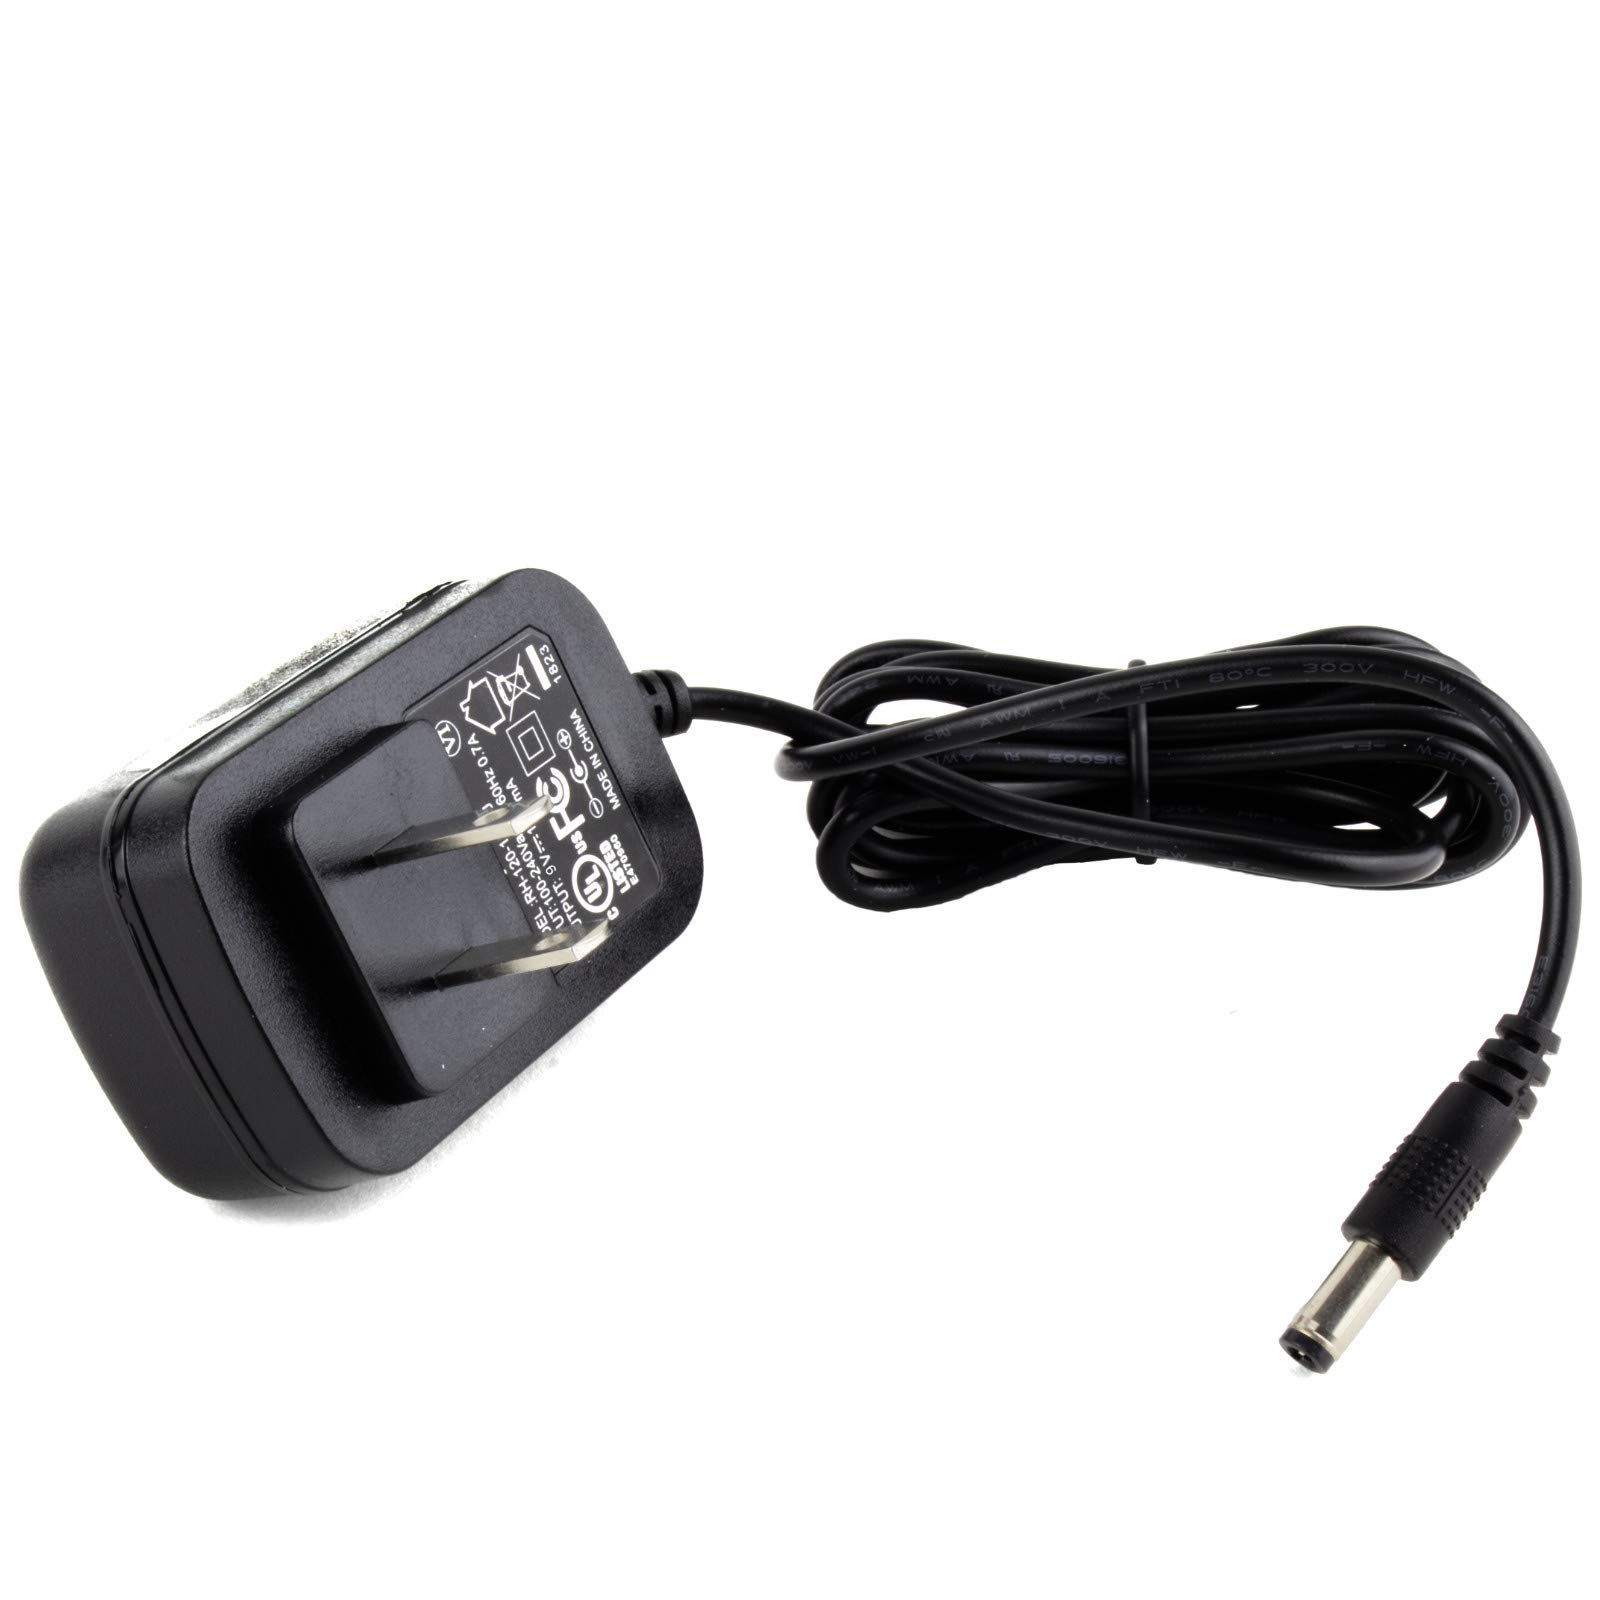 MyVolts 9V Power Supply Adaptor Compatible with Brother PT-2700 Label Printer - US Plug